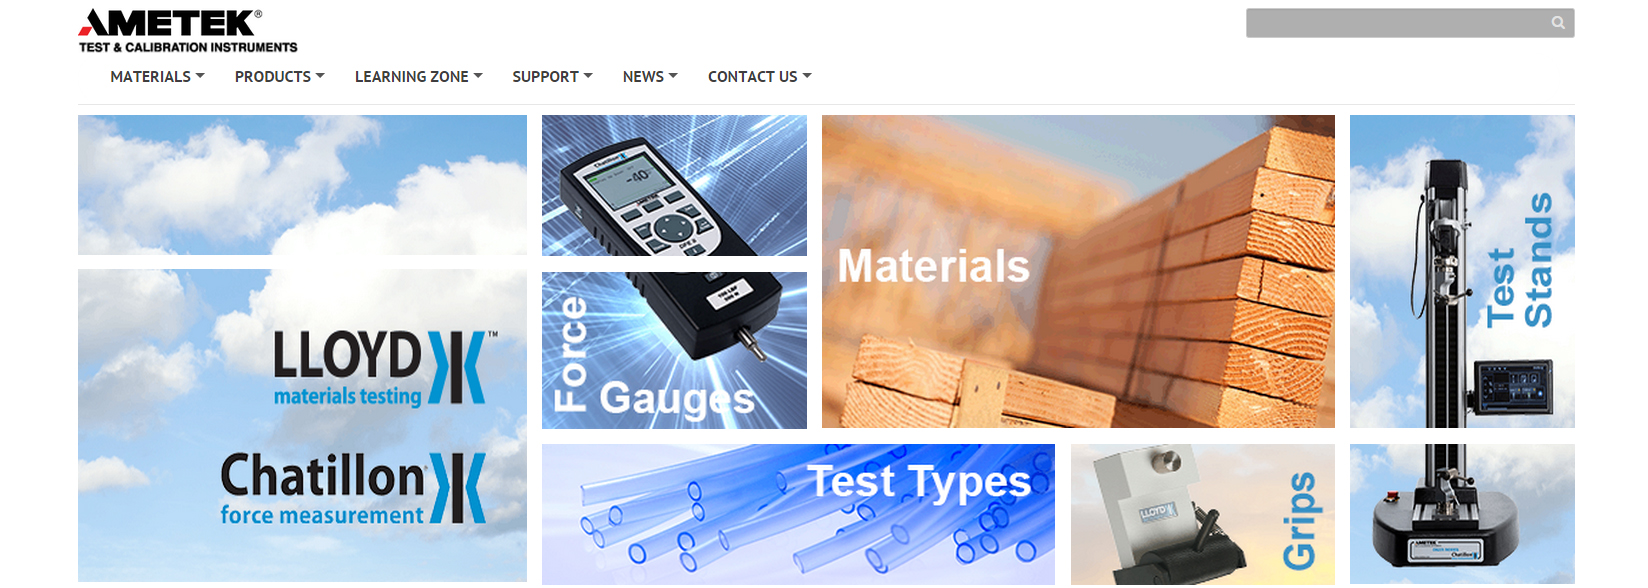 AMETEK TCI Launches New Website